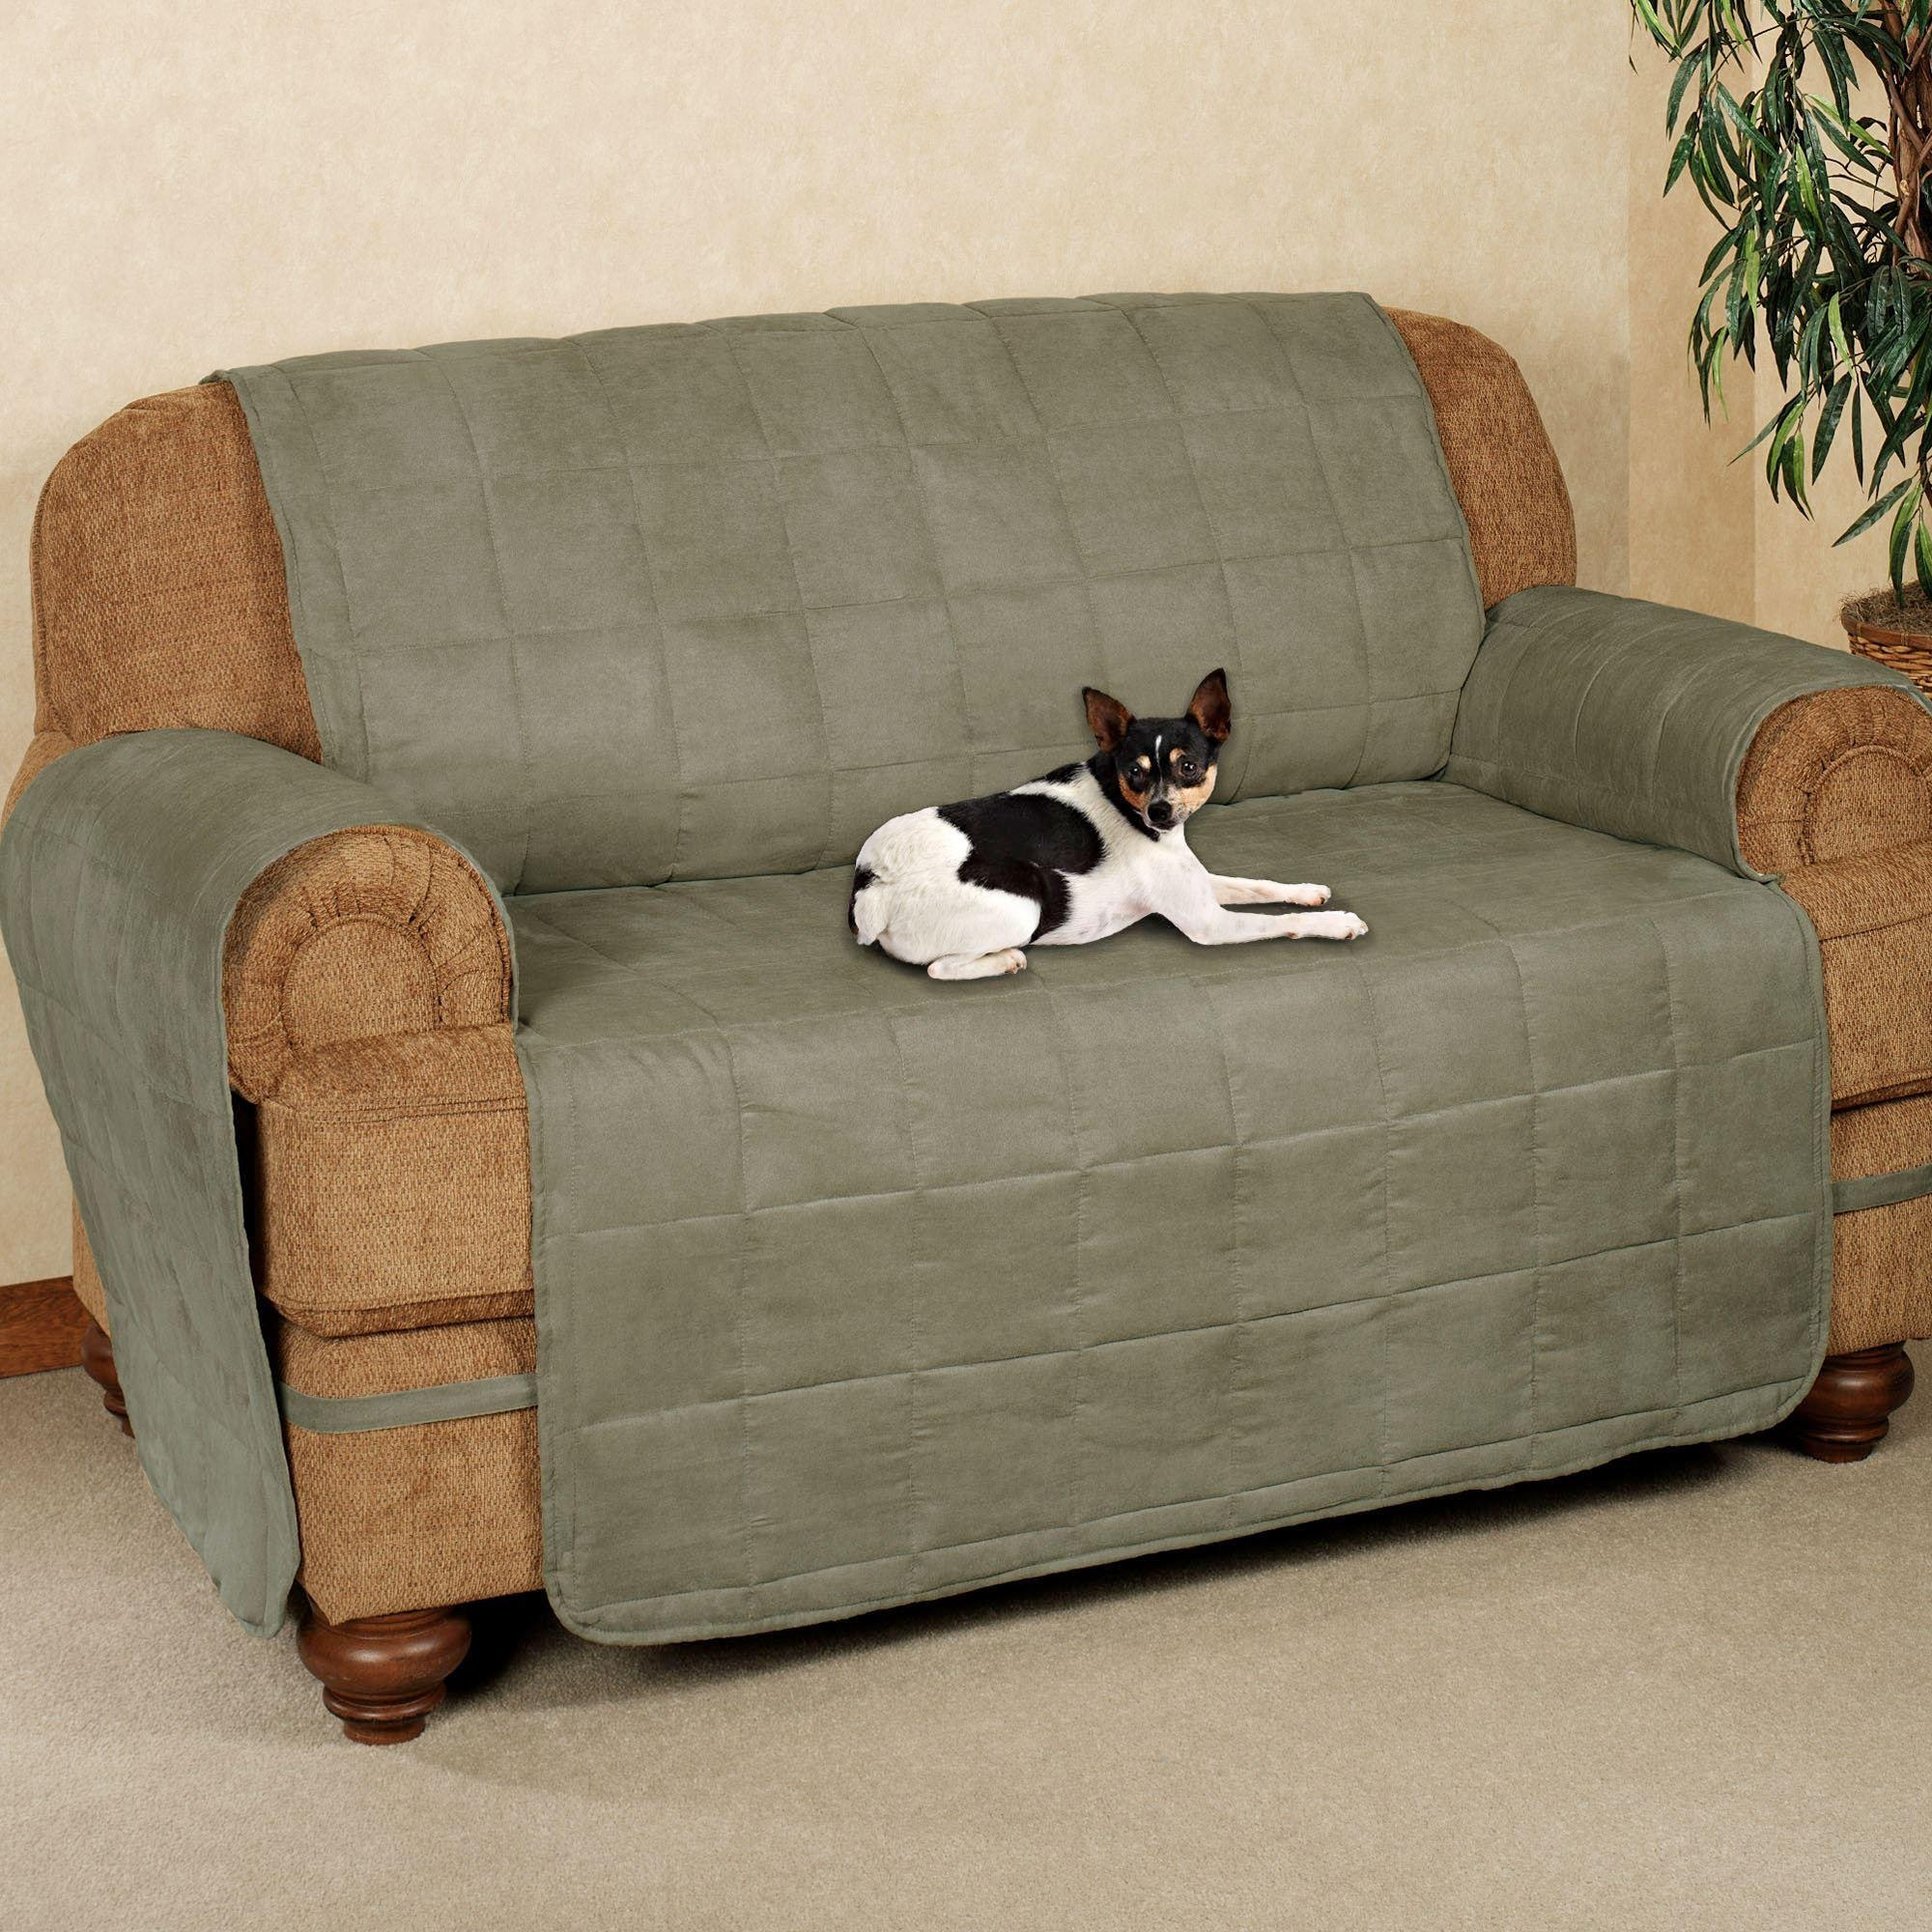 Ultimate Pet Furniture Protectors With Straps inside Arm Protectors for Sofas